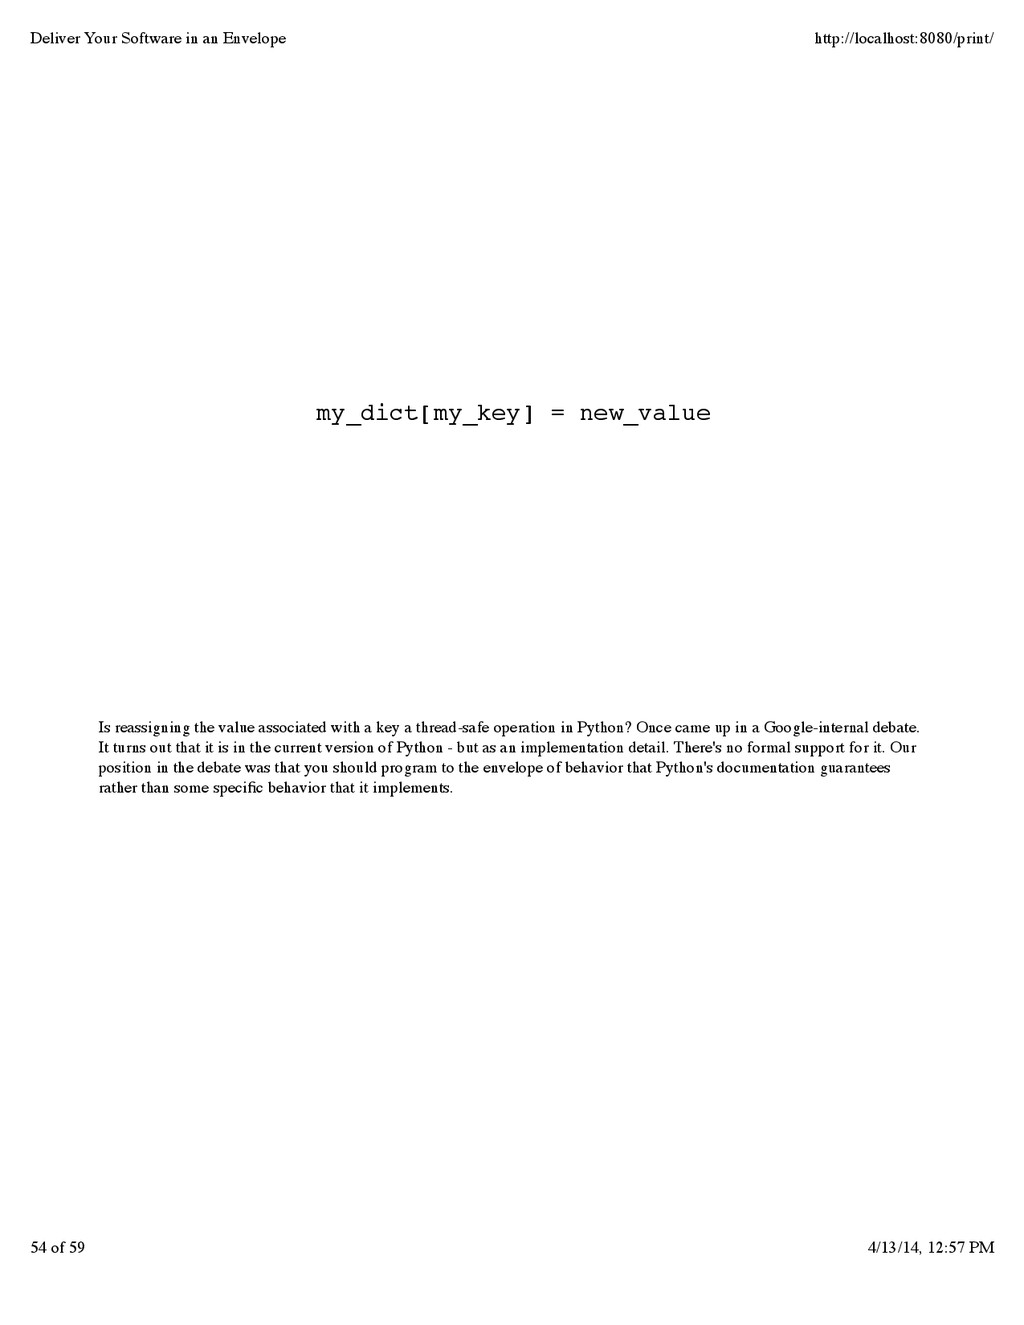 Is reassigning the value associated with a key ...